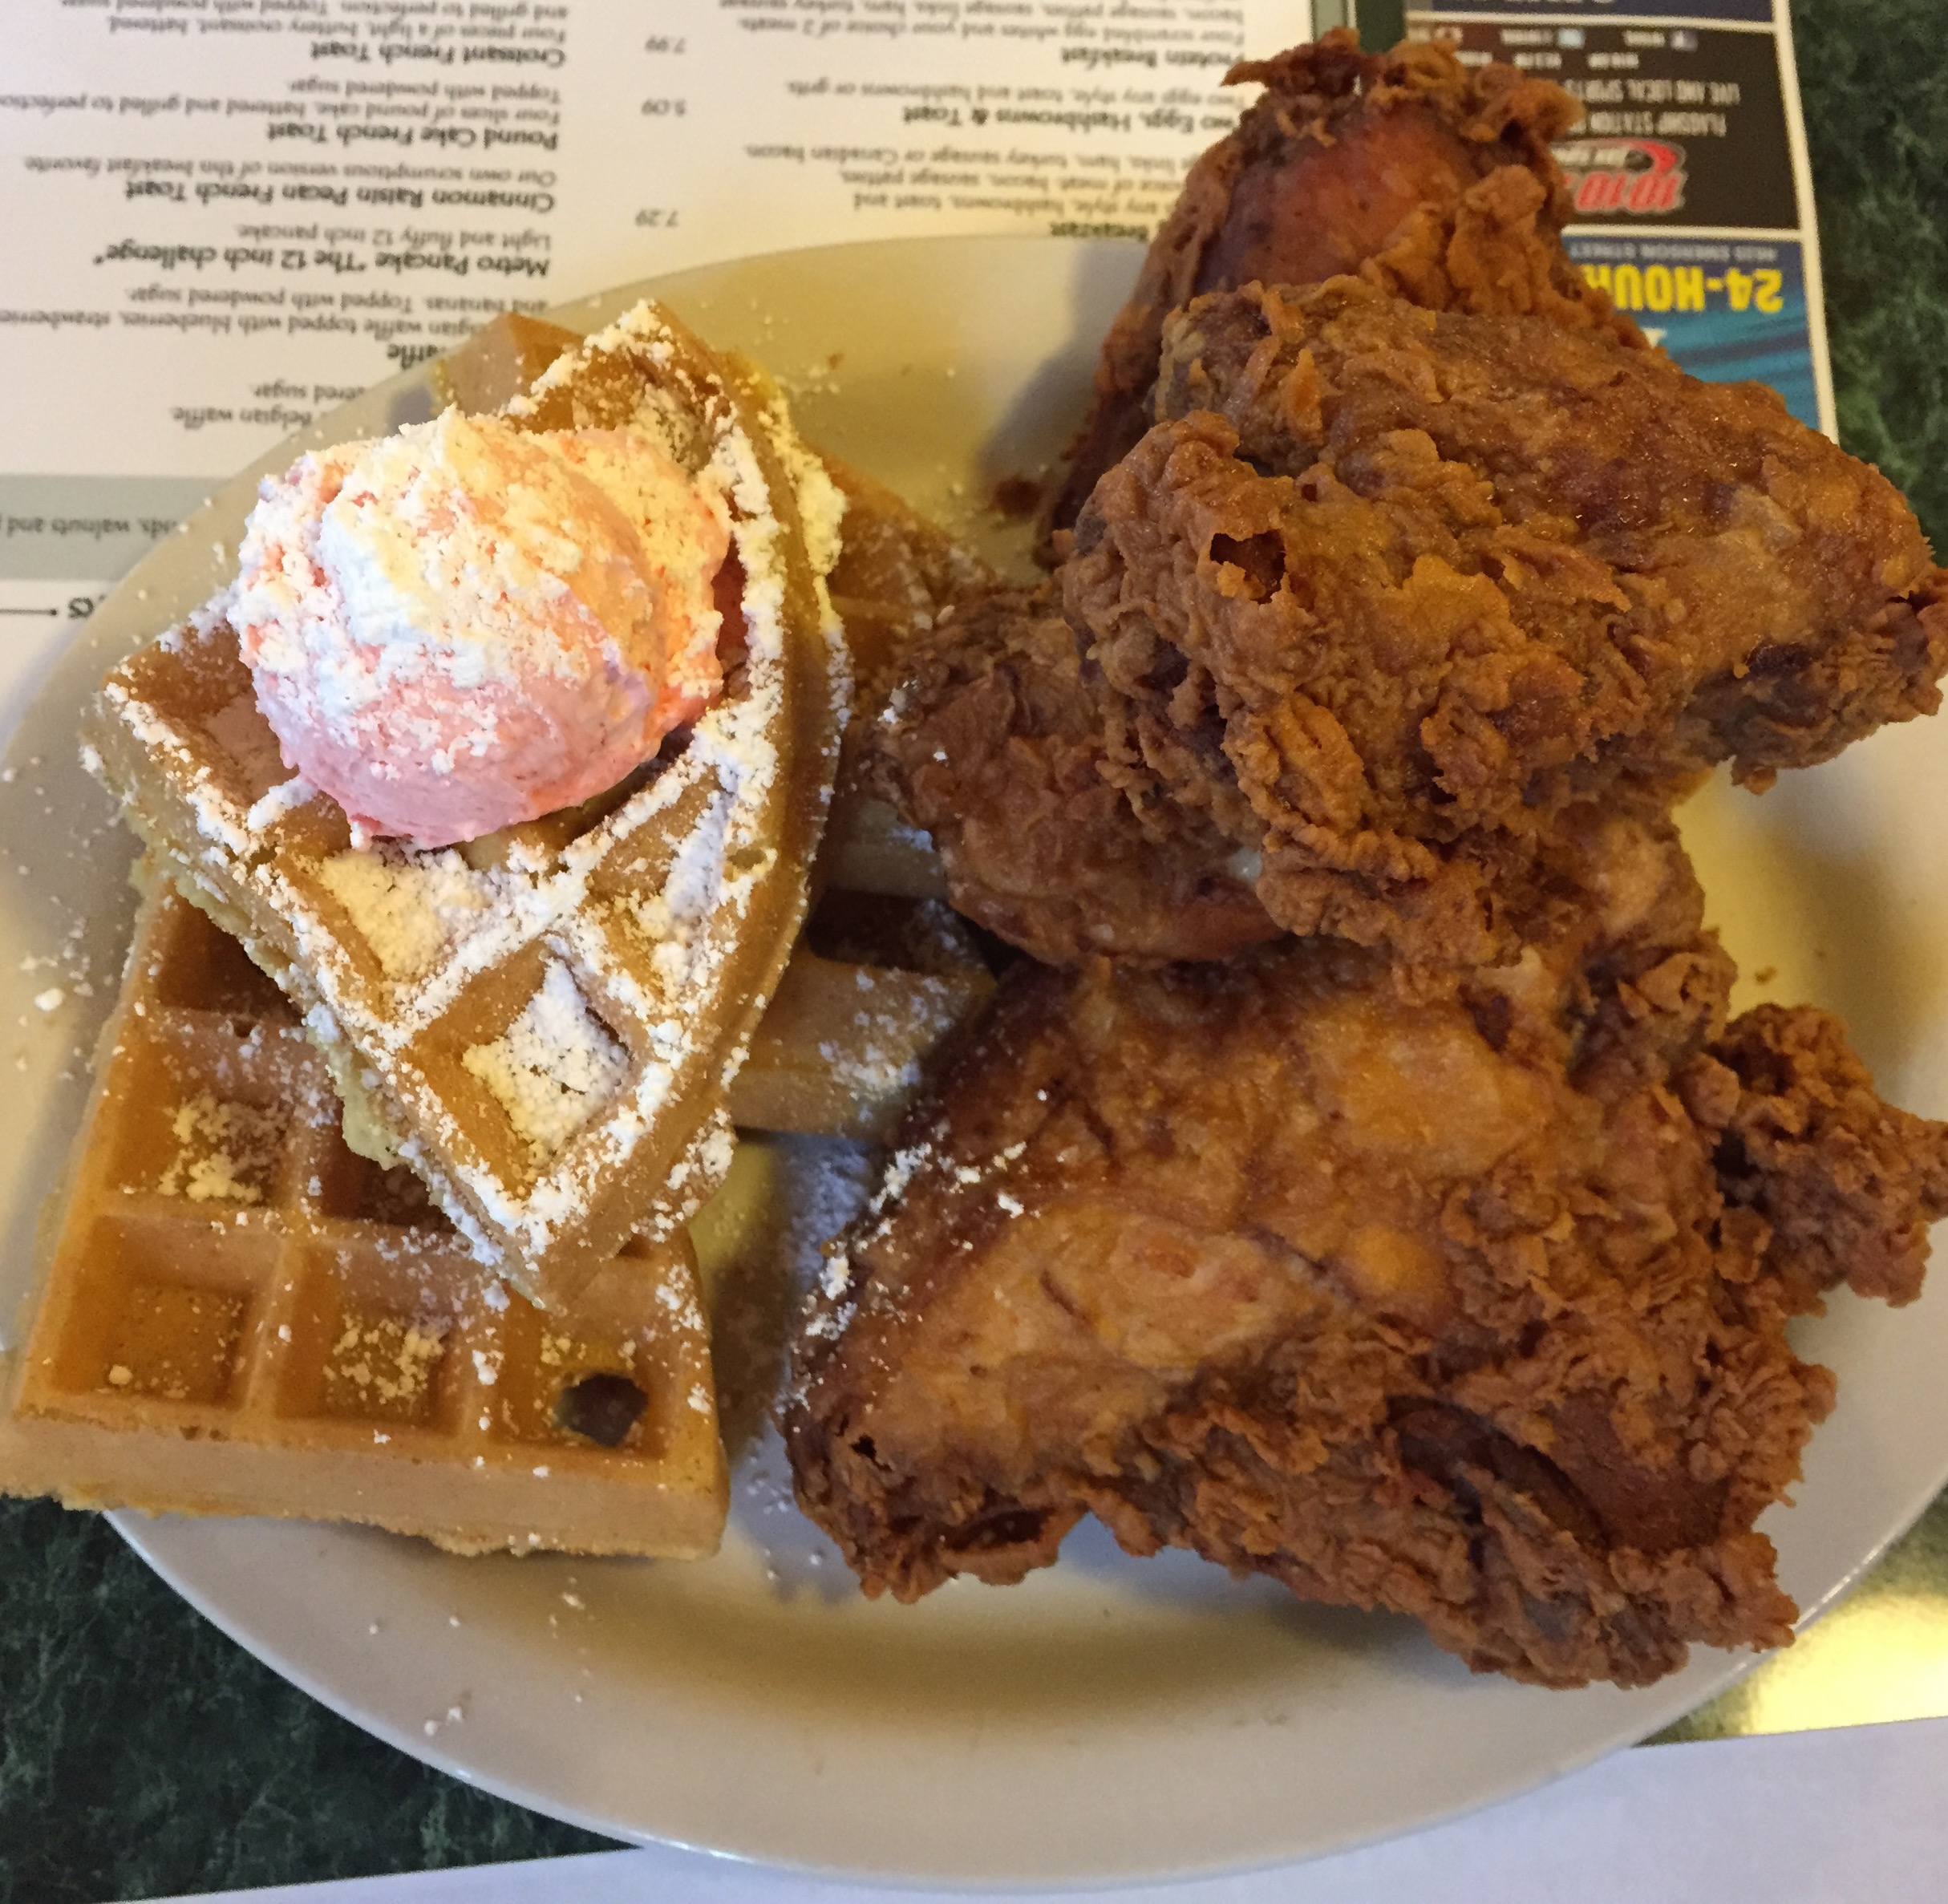 Chicken and waffles at the Metro Diner in Jacksonville